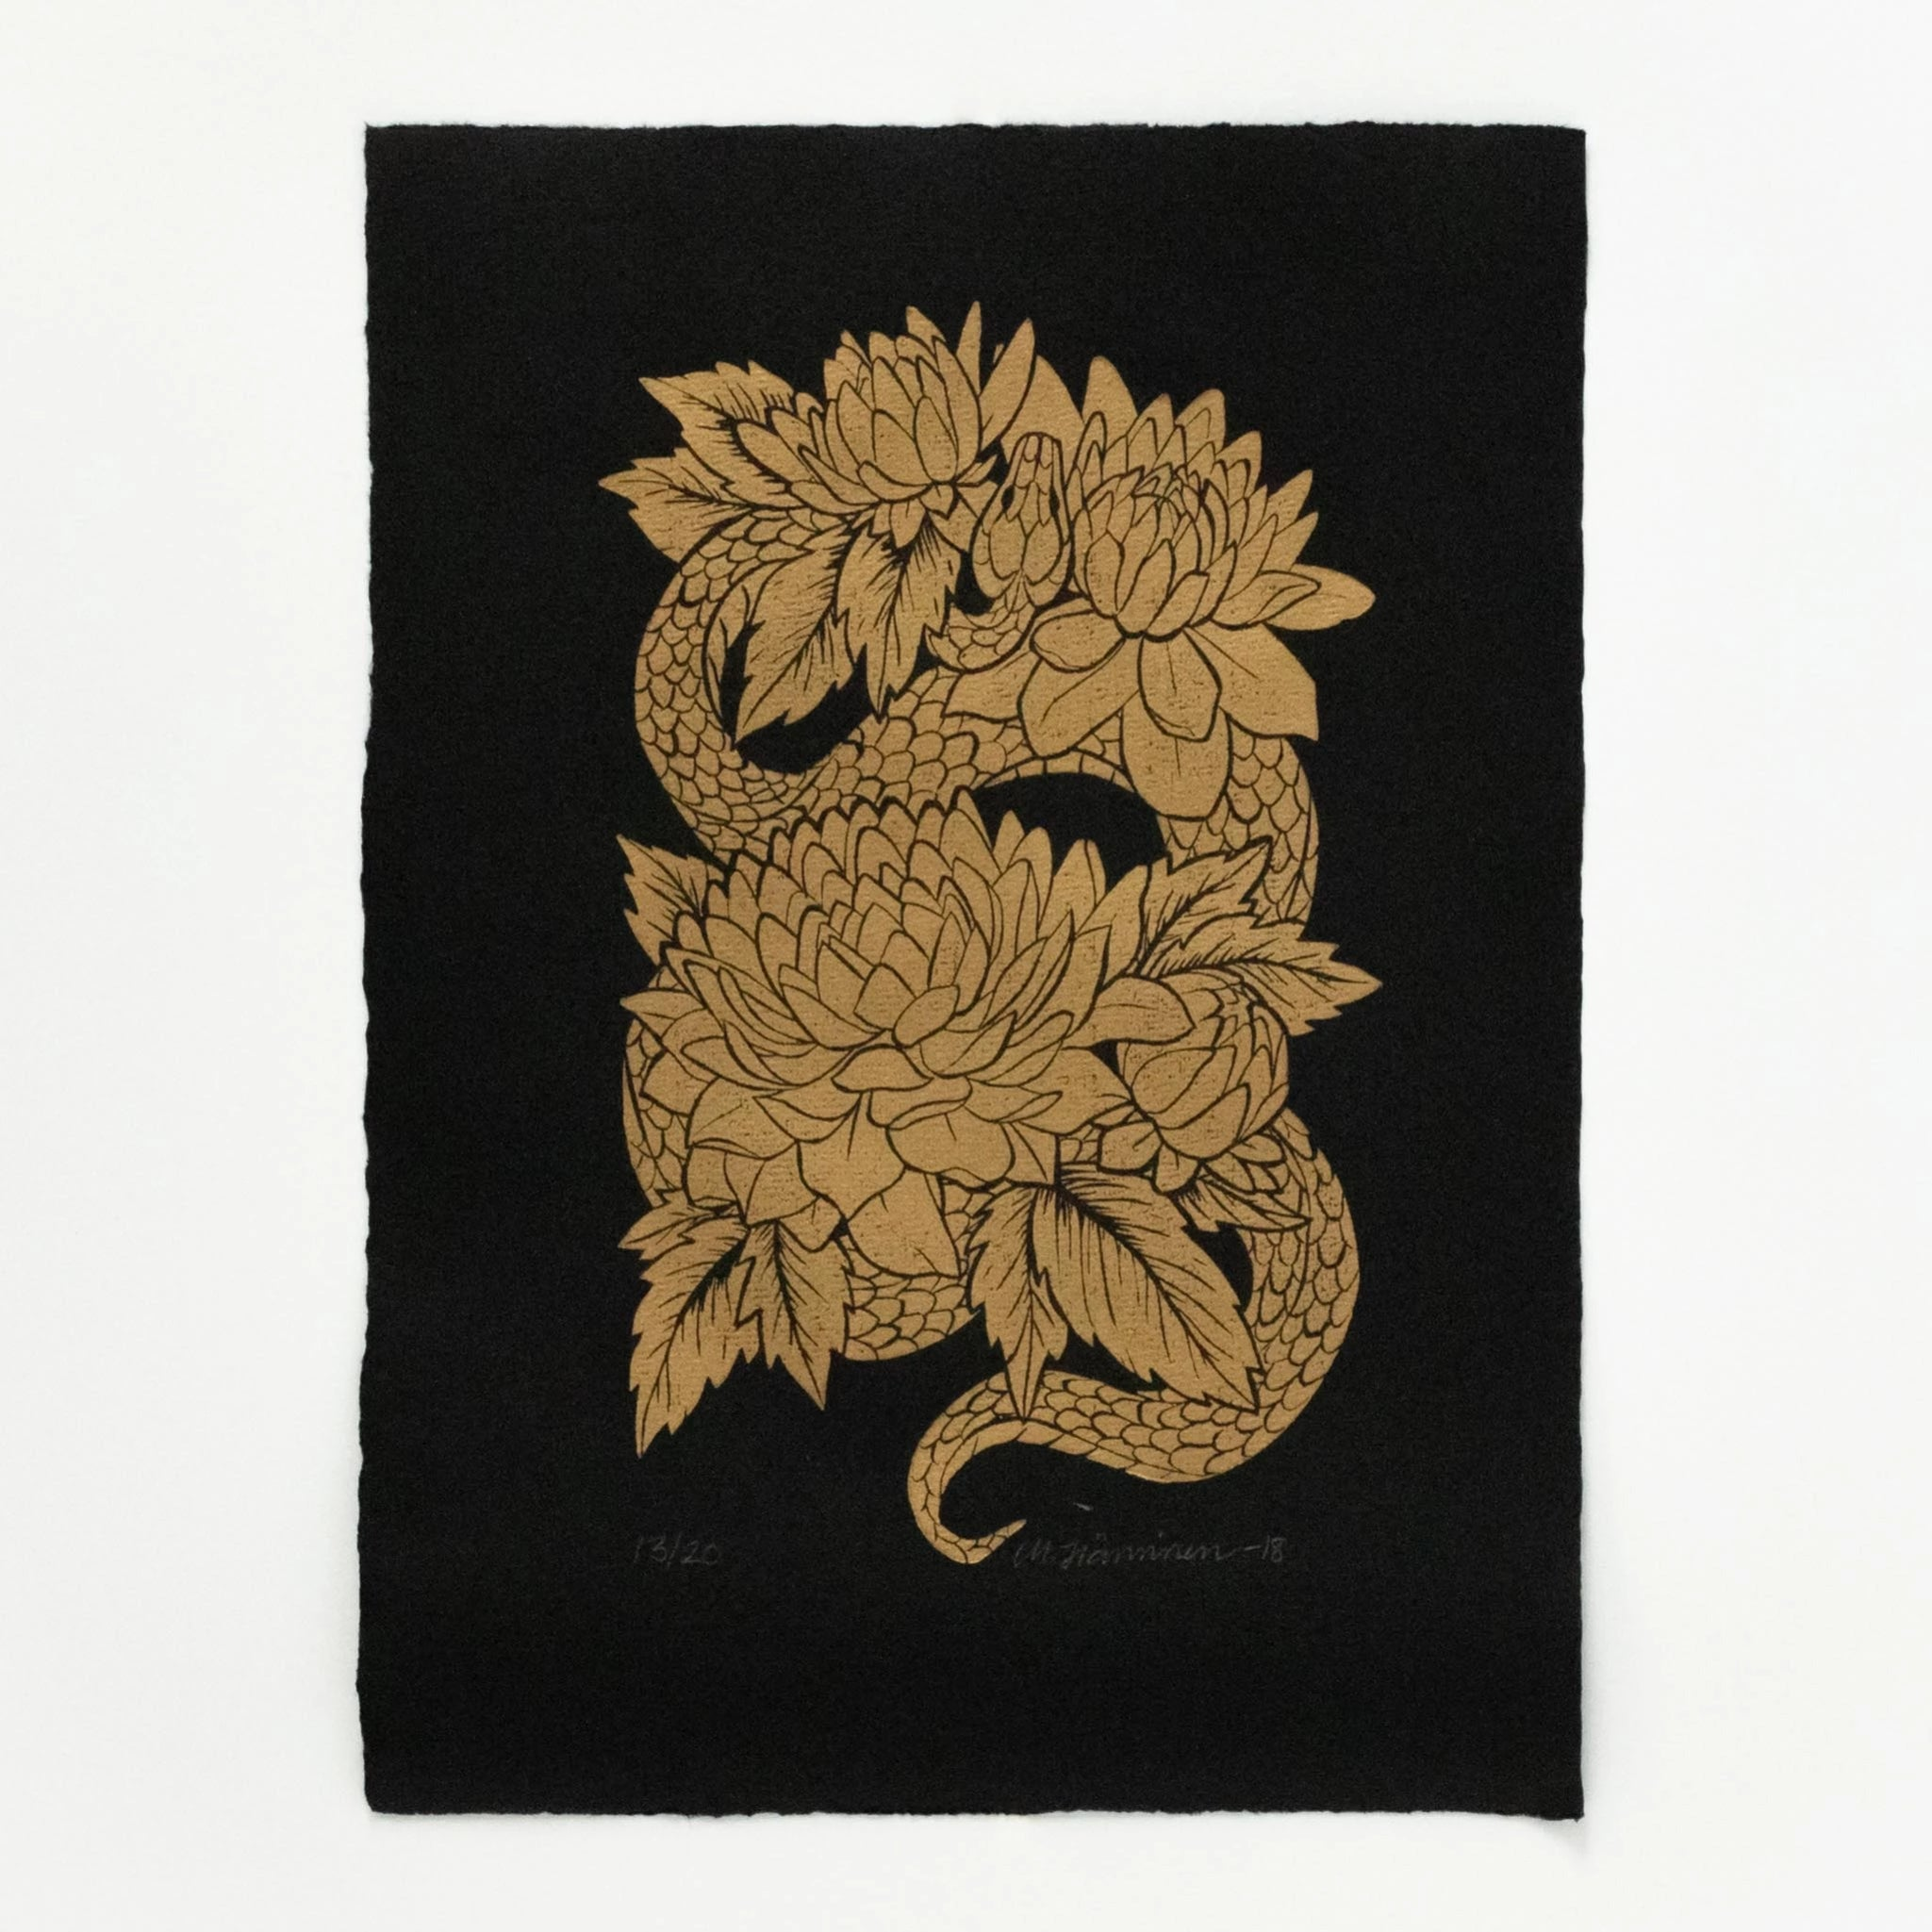 Old-school tattoo flash style linocut art print of a golden snake and dahlia flowers in full bloom on black A4 paper.